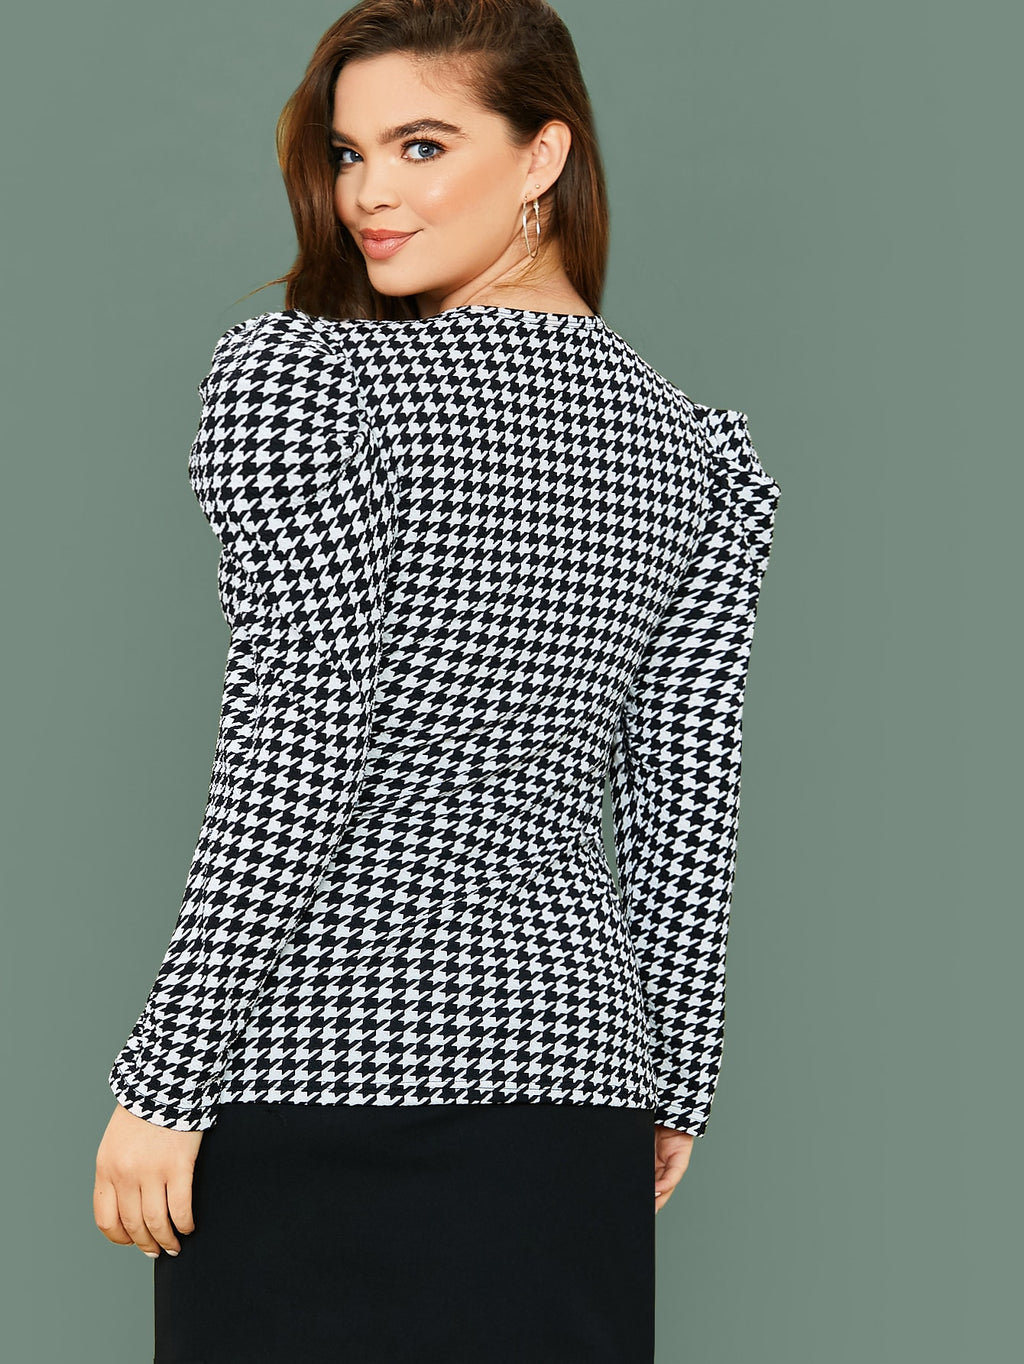 Plus Size Bold Shoulder Houndstooth Fitted Top